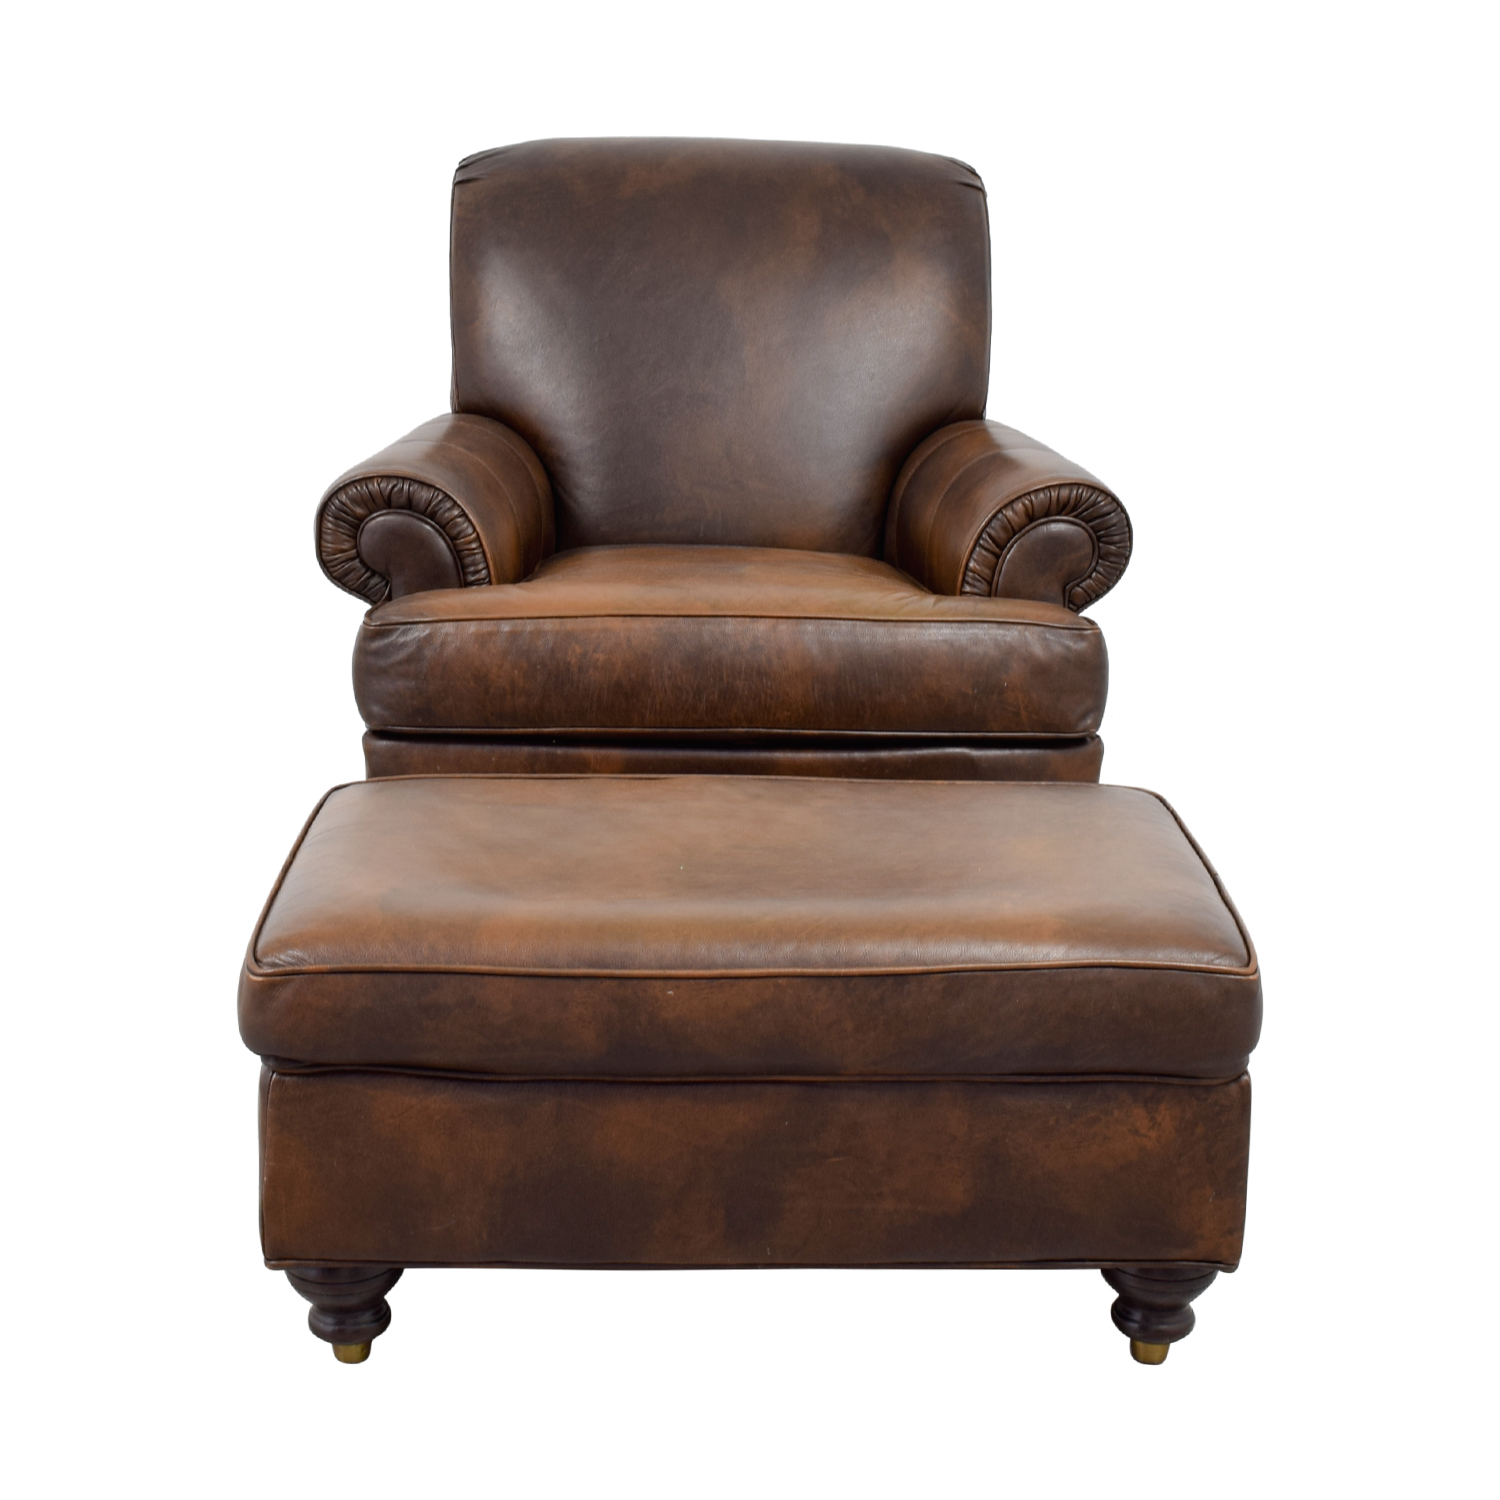 shop Ethan Allen Ethan Allen Brown Leather Chair & Ottoman online